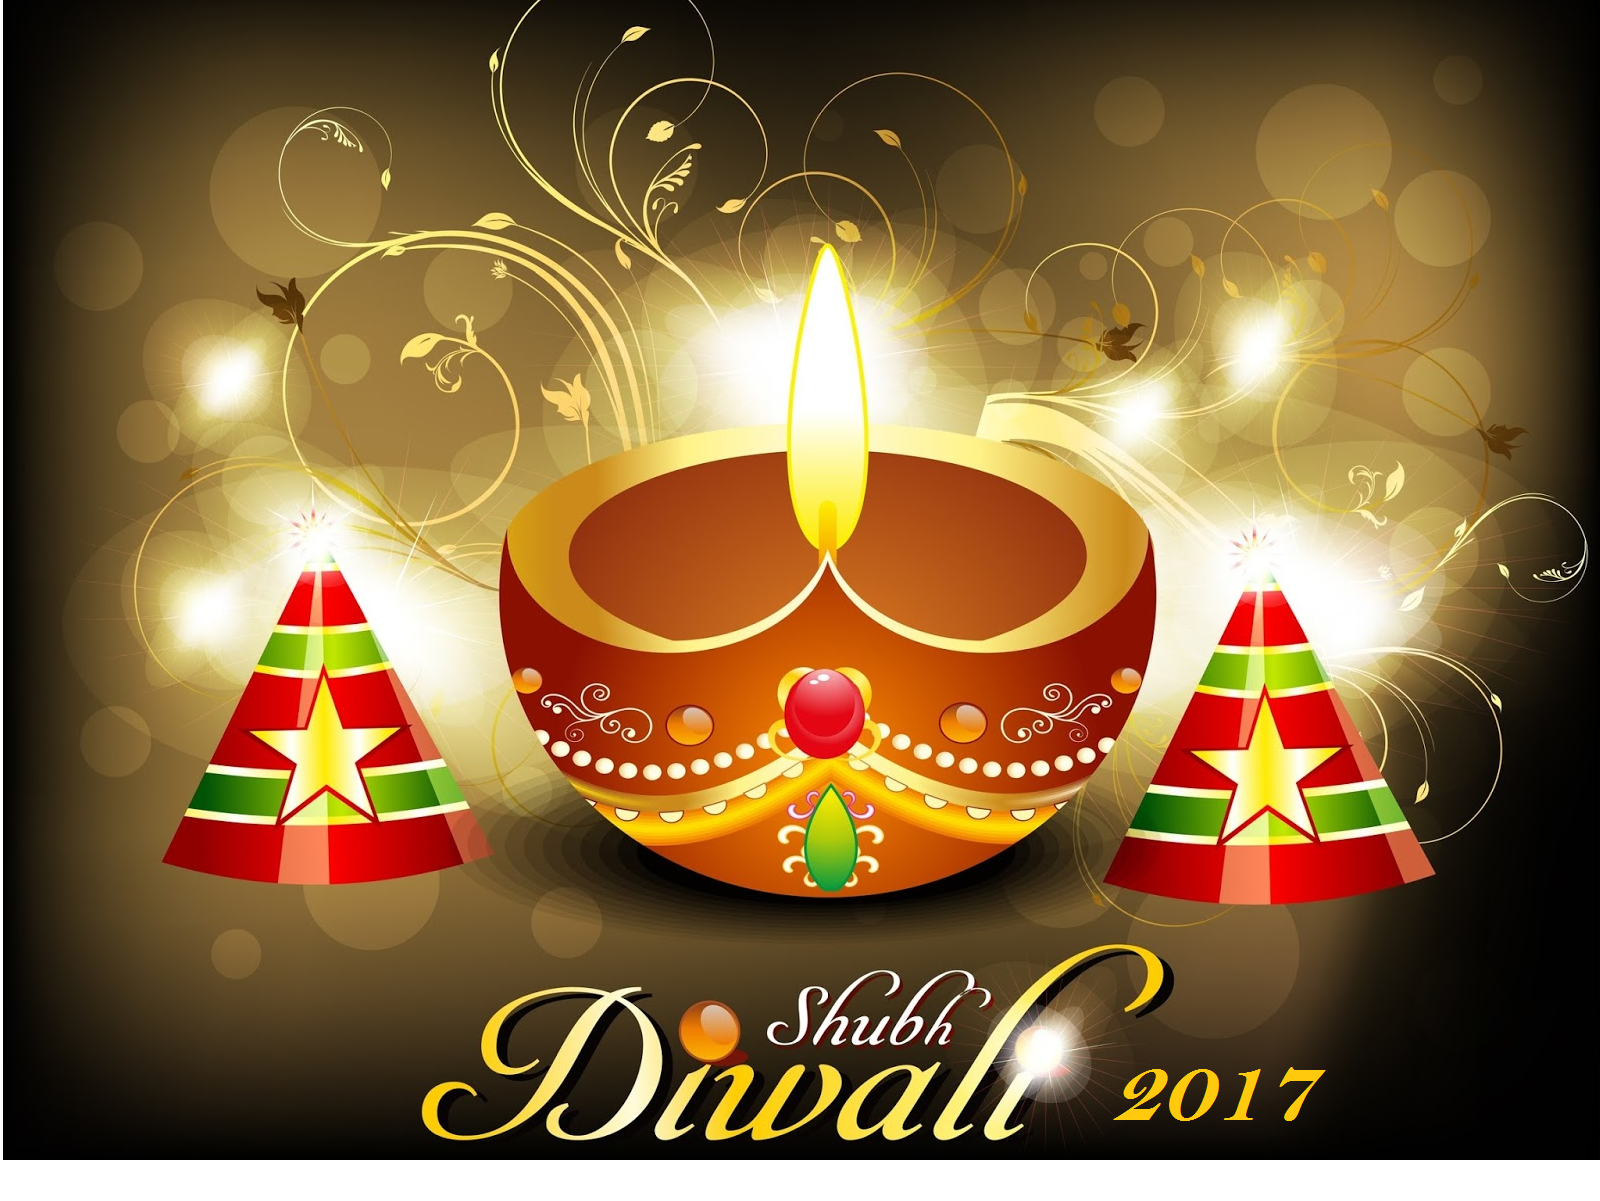 Free Download Happy Diwali Greetings 2017 Diwali Greeting Cards